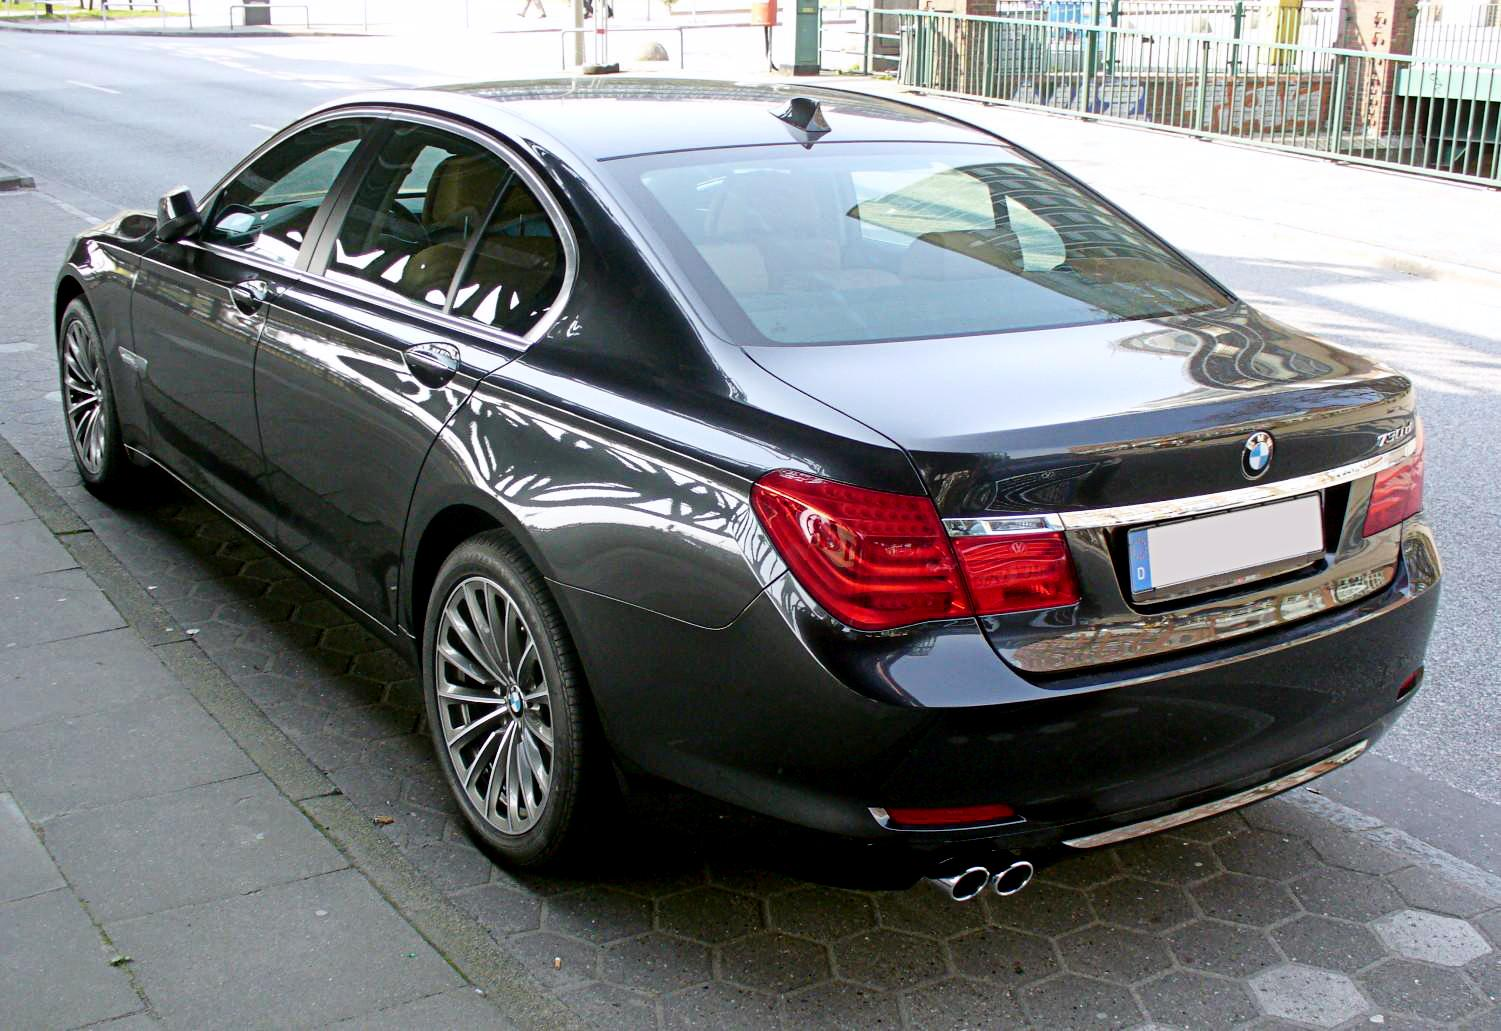 Description BMW 730d xDrive (F01) yankee fogadás bet365 bet365 poker – Frontansicht, 31. Dezember 2012 ...